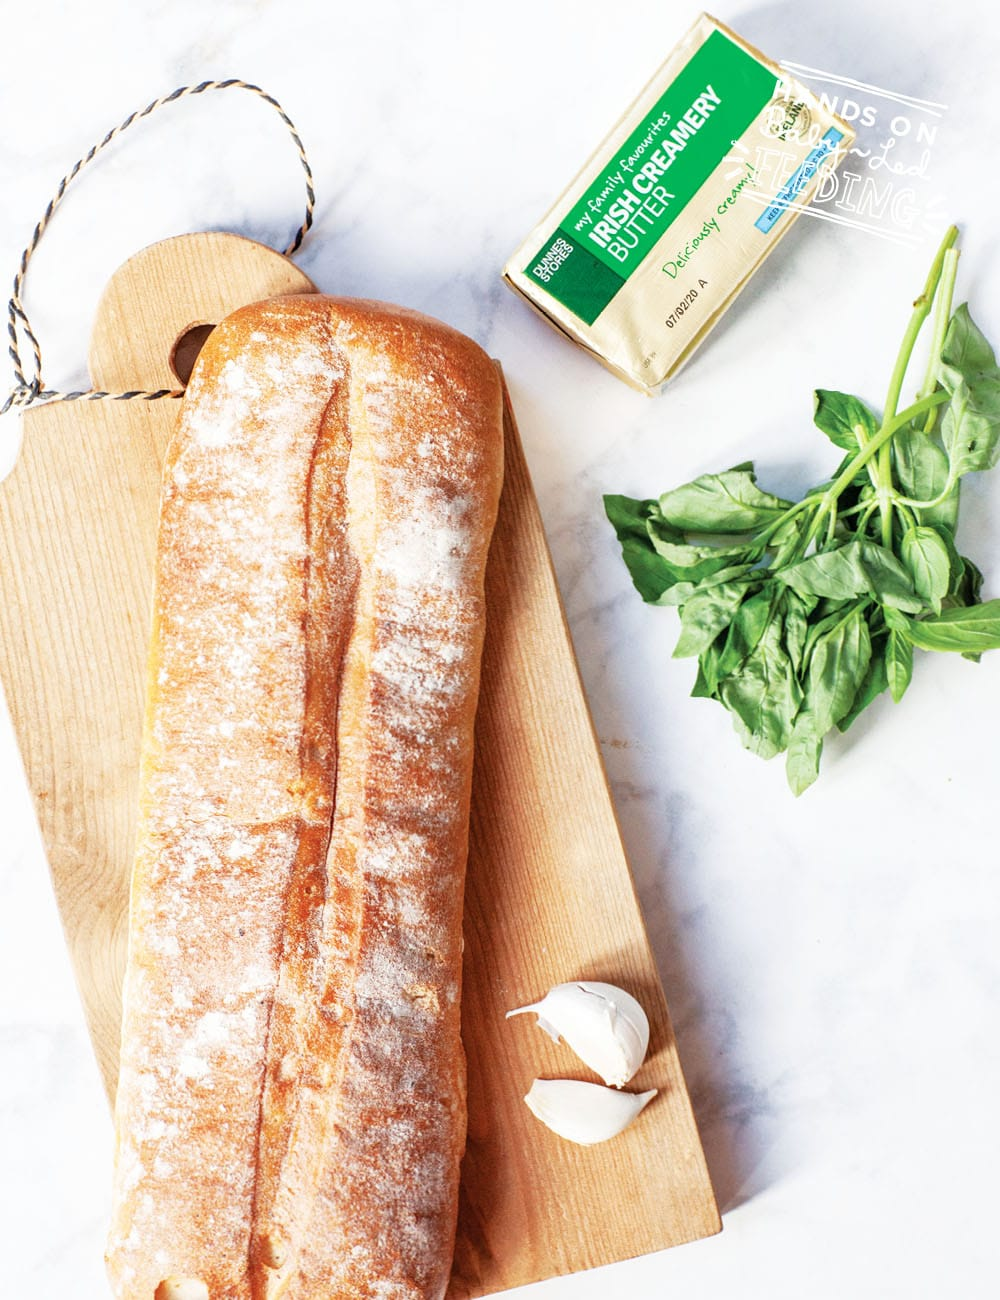 Garlic bread makes a delicious side to this dish!